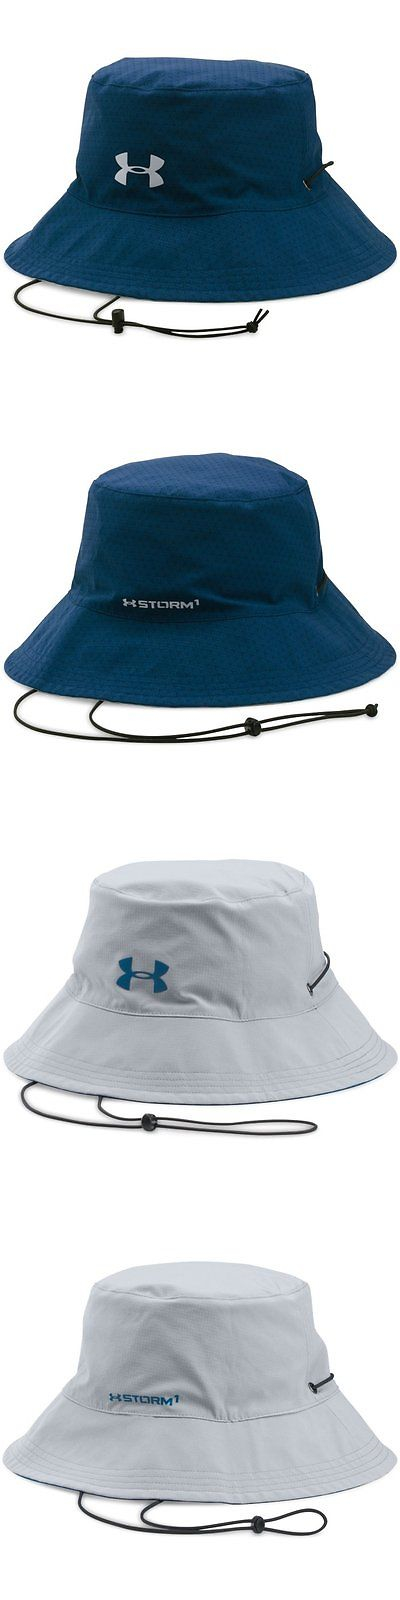 bce260cf968 Hats 163543  Under Armour Switchback 2.0 Reversible Bucket Hat (Blue Gray)  1274037-997 -  BUY IT NOW ONLY   34.99 on eBay!